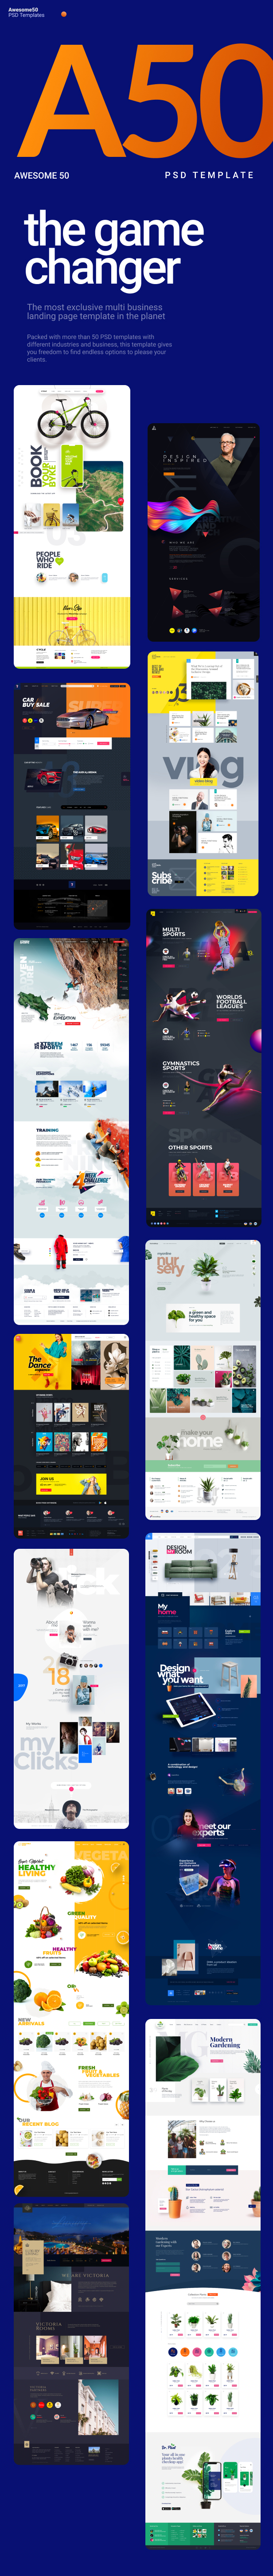 Awesome50 | A Wholesale Collection of 50 Multi Business Landing Pages and Home Pages PSD Template - 4